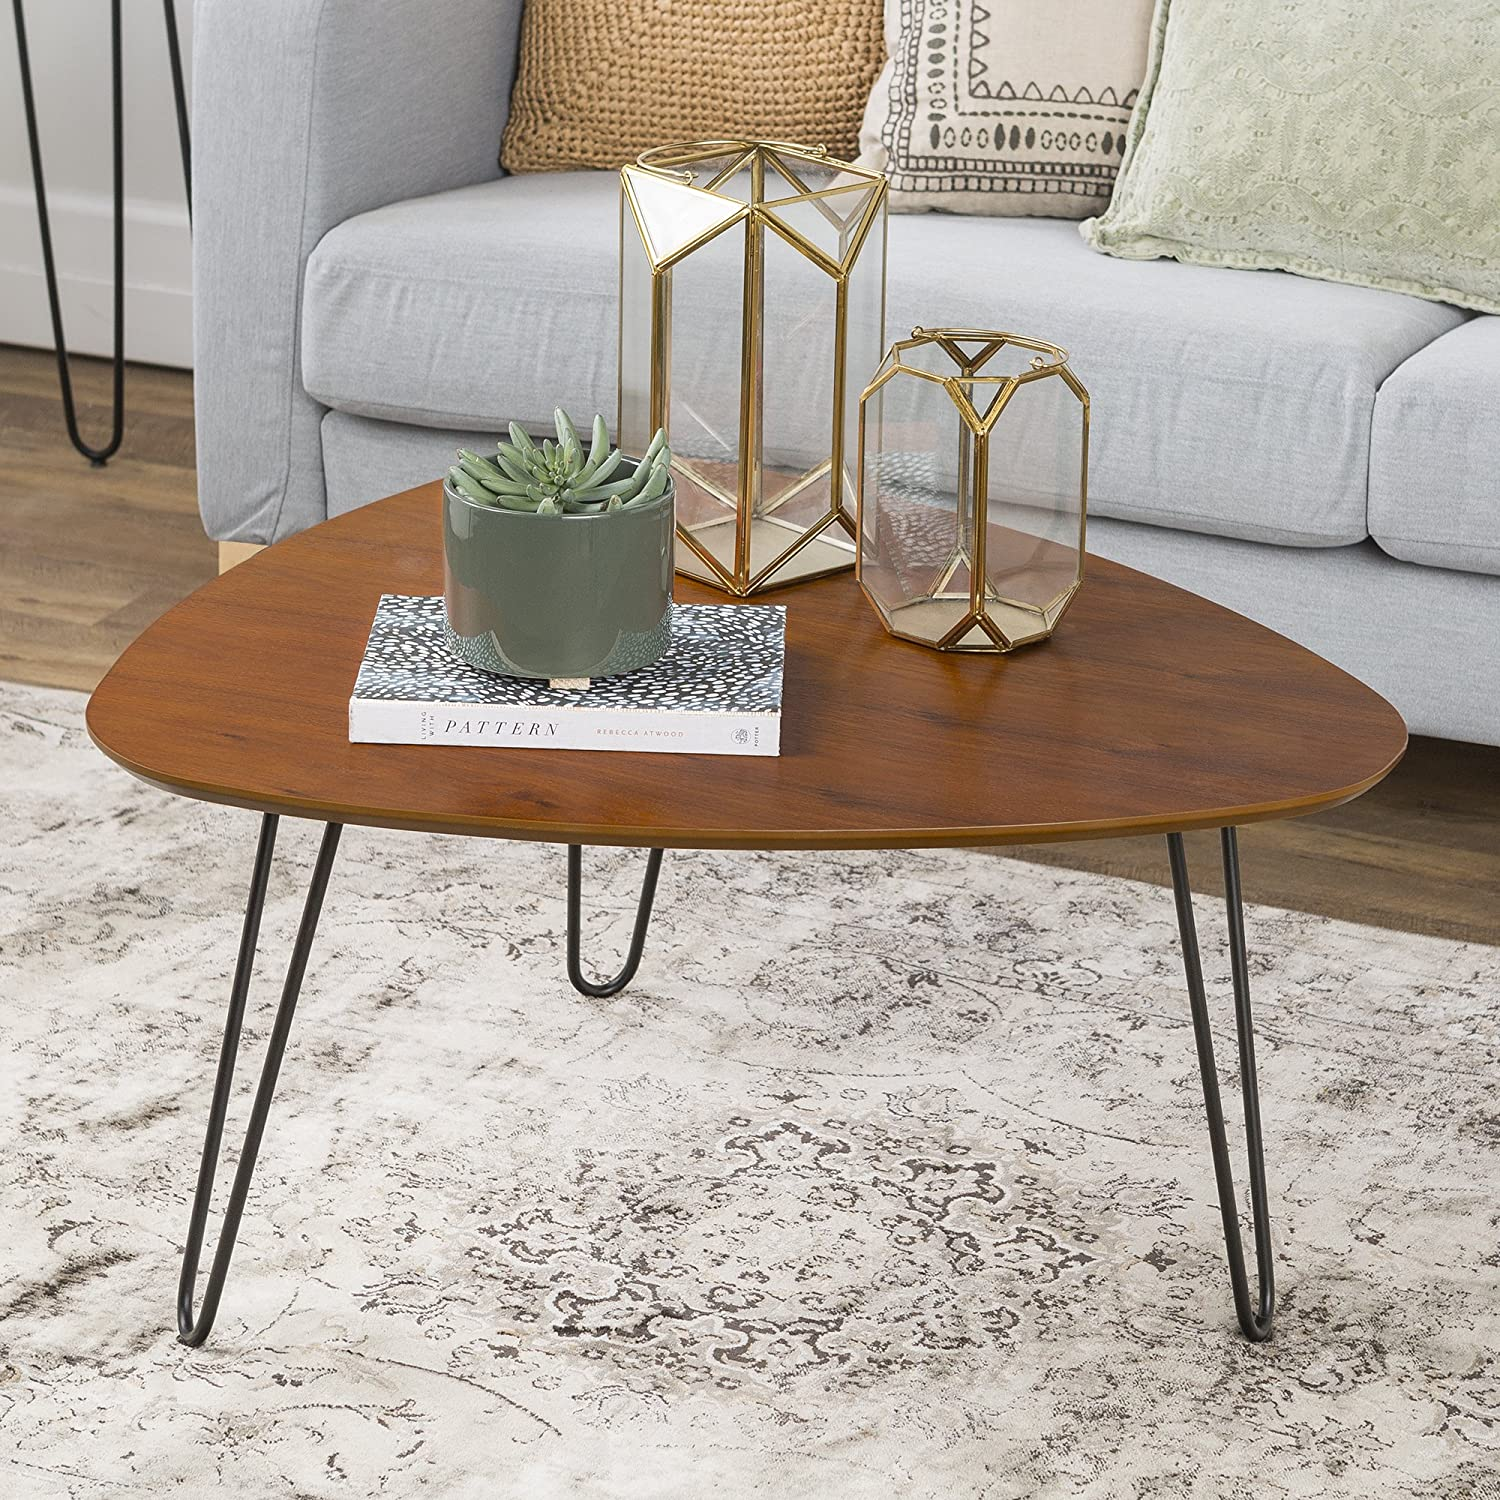 We Furniture 32 Hairpin Leg Wood Coffee Table Walnut